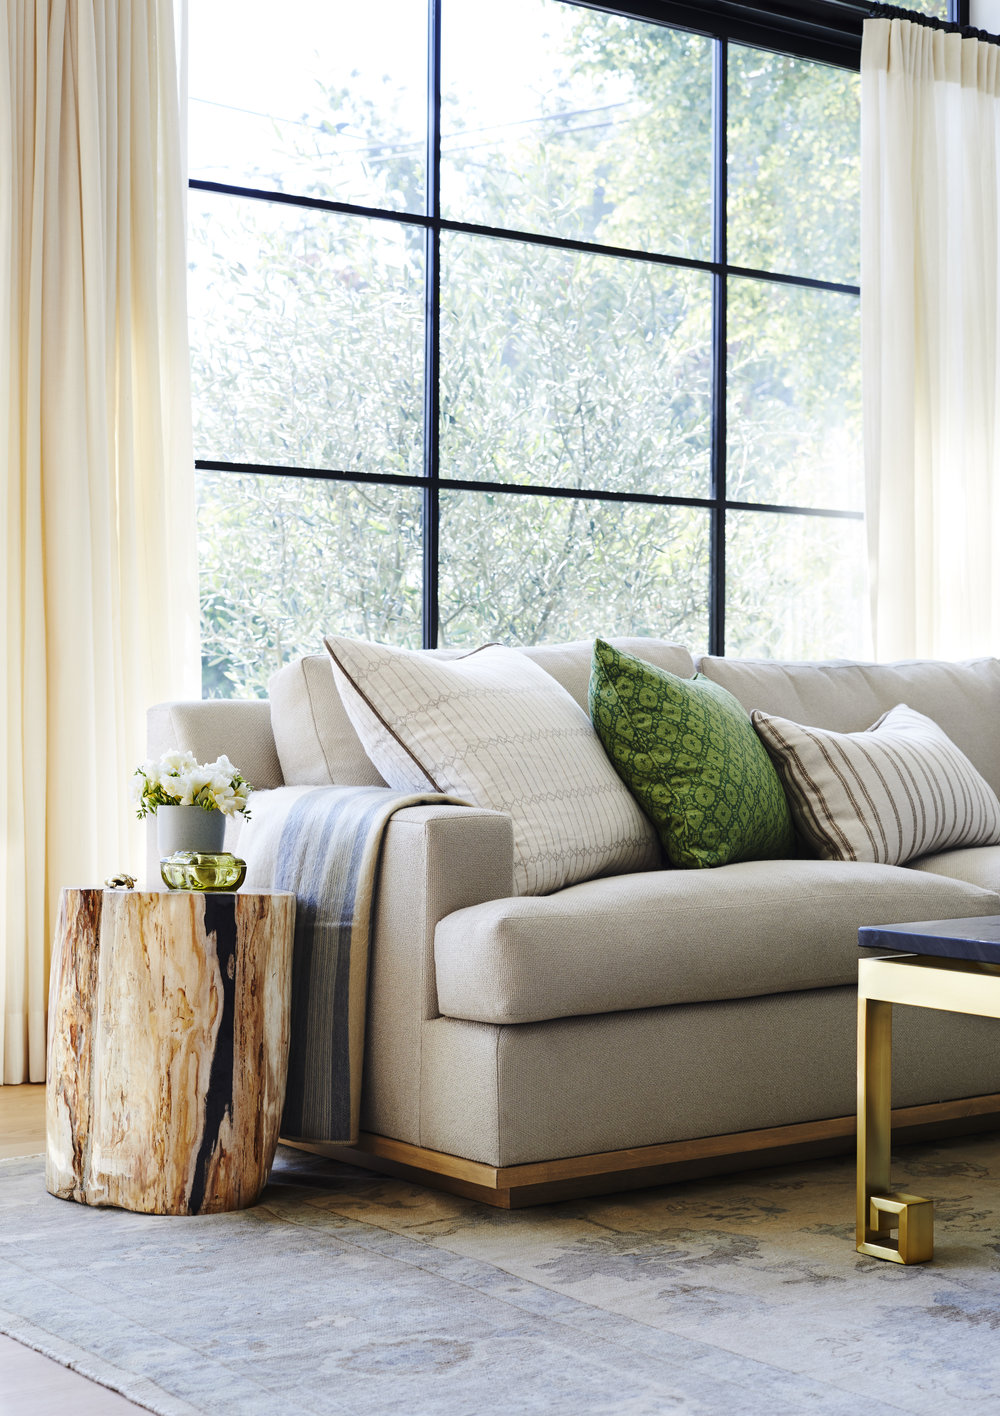 Shop Pillows - Perfect place to find pillows styles we love for the home!